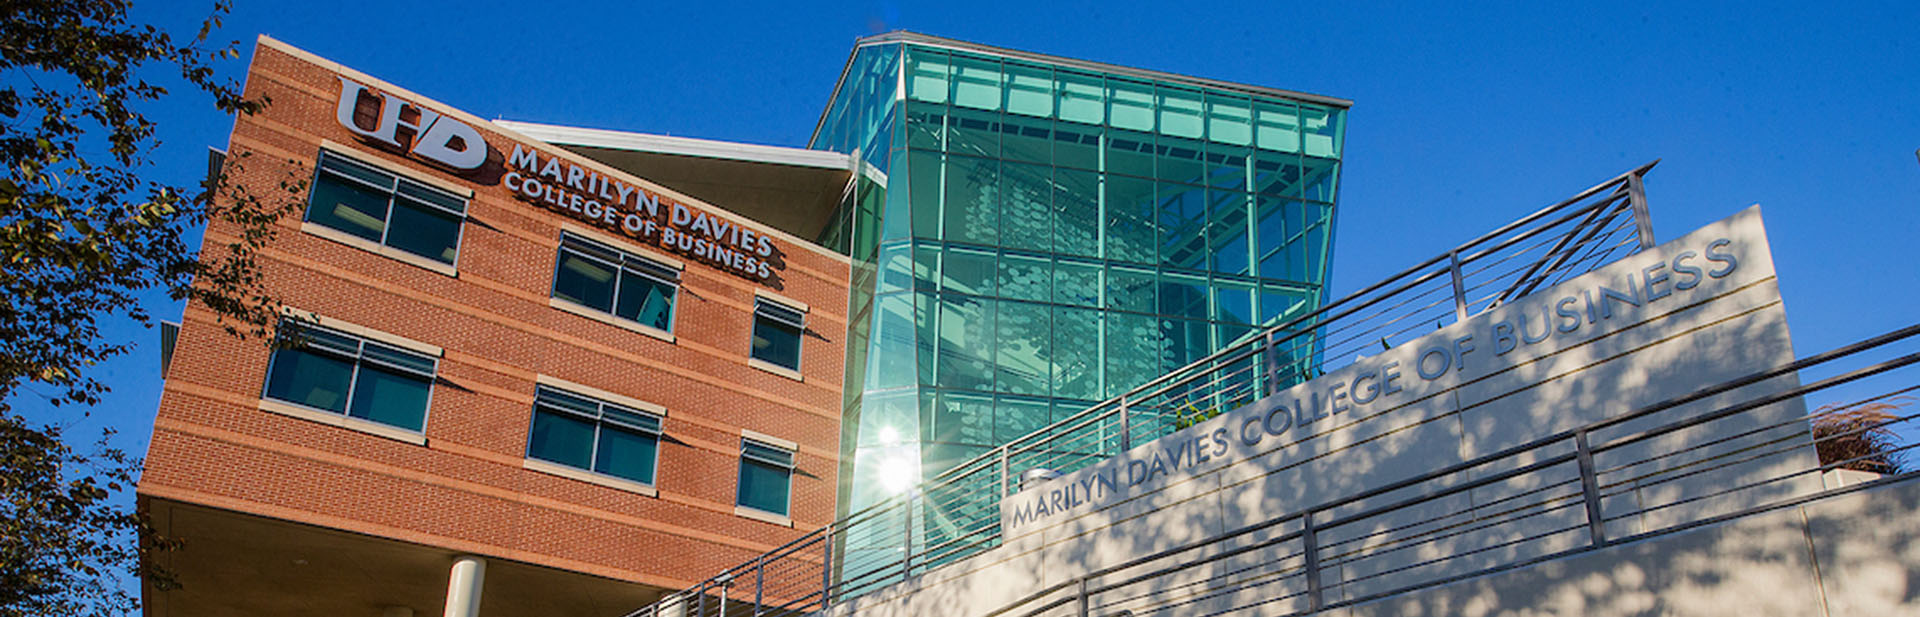 Marilyn Davies College of Business Building